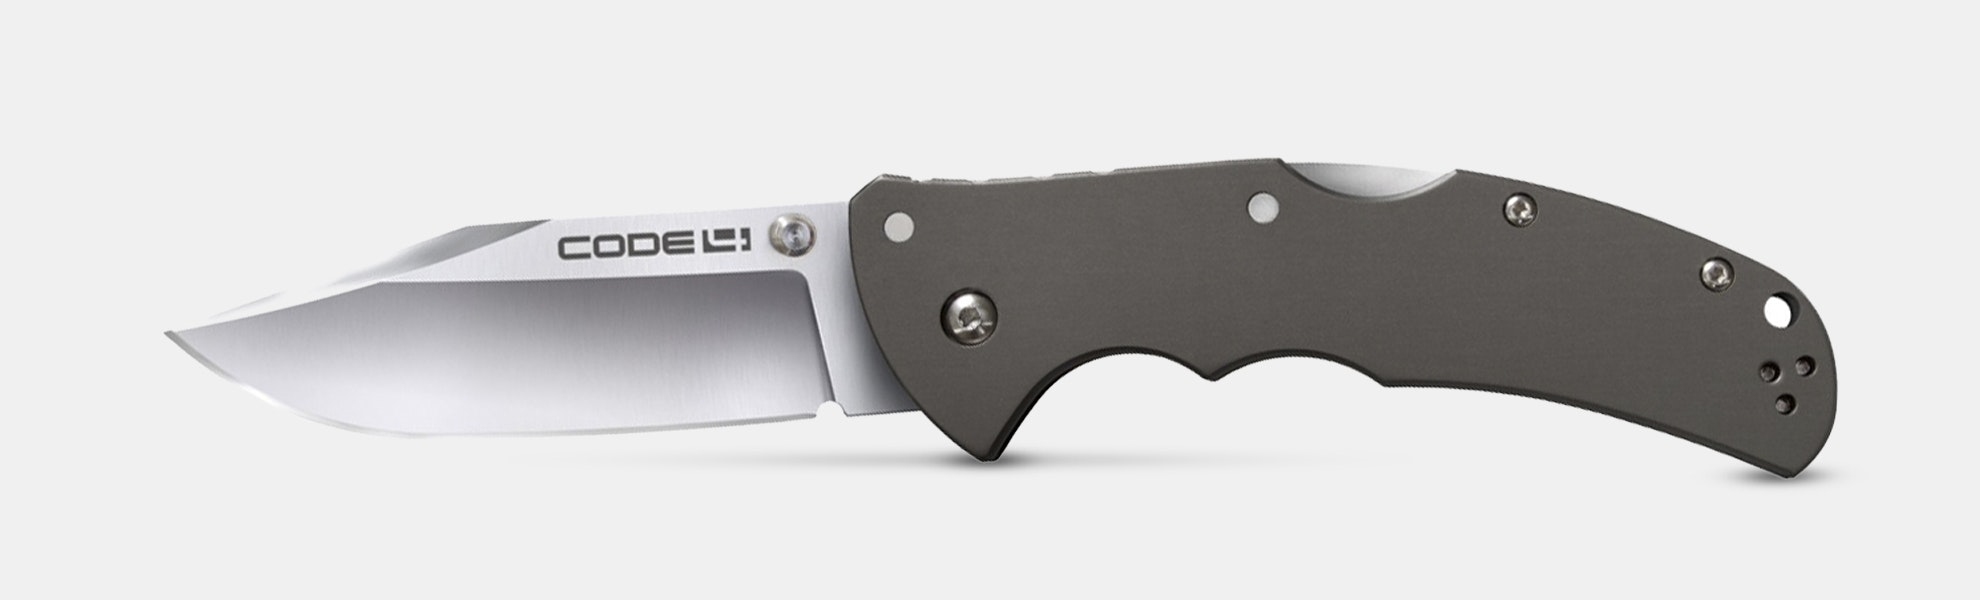 Cold Steel Code 4 Knife